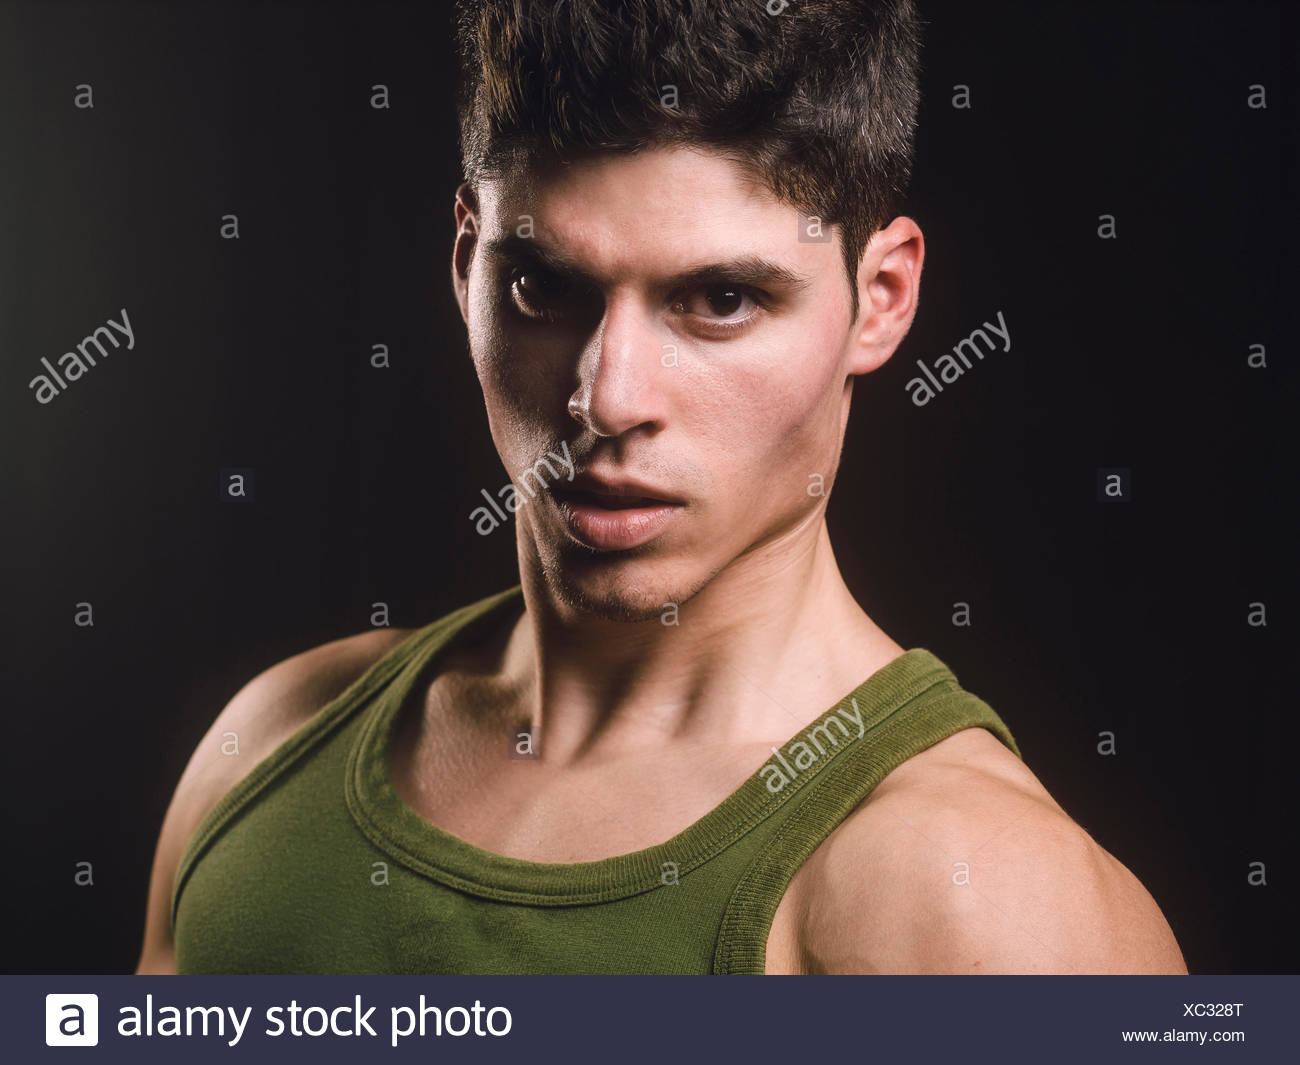 Portrait of handsome and athletic man - Stock Image